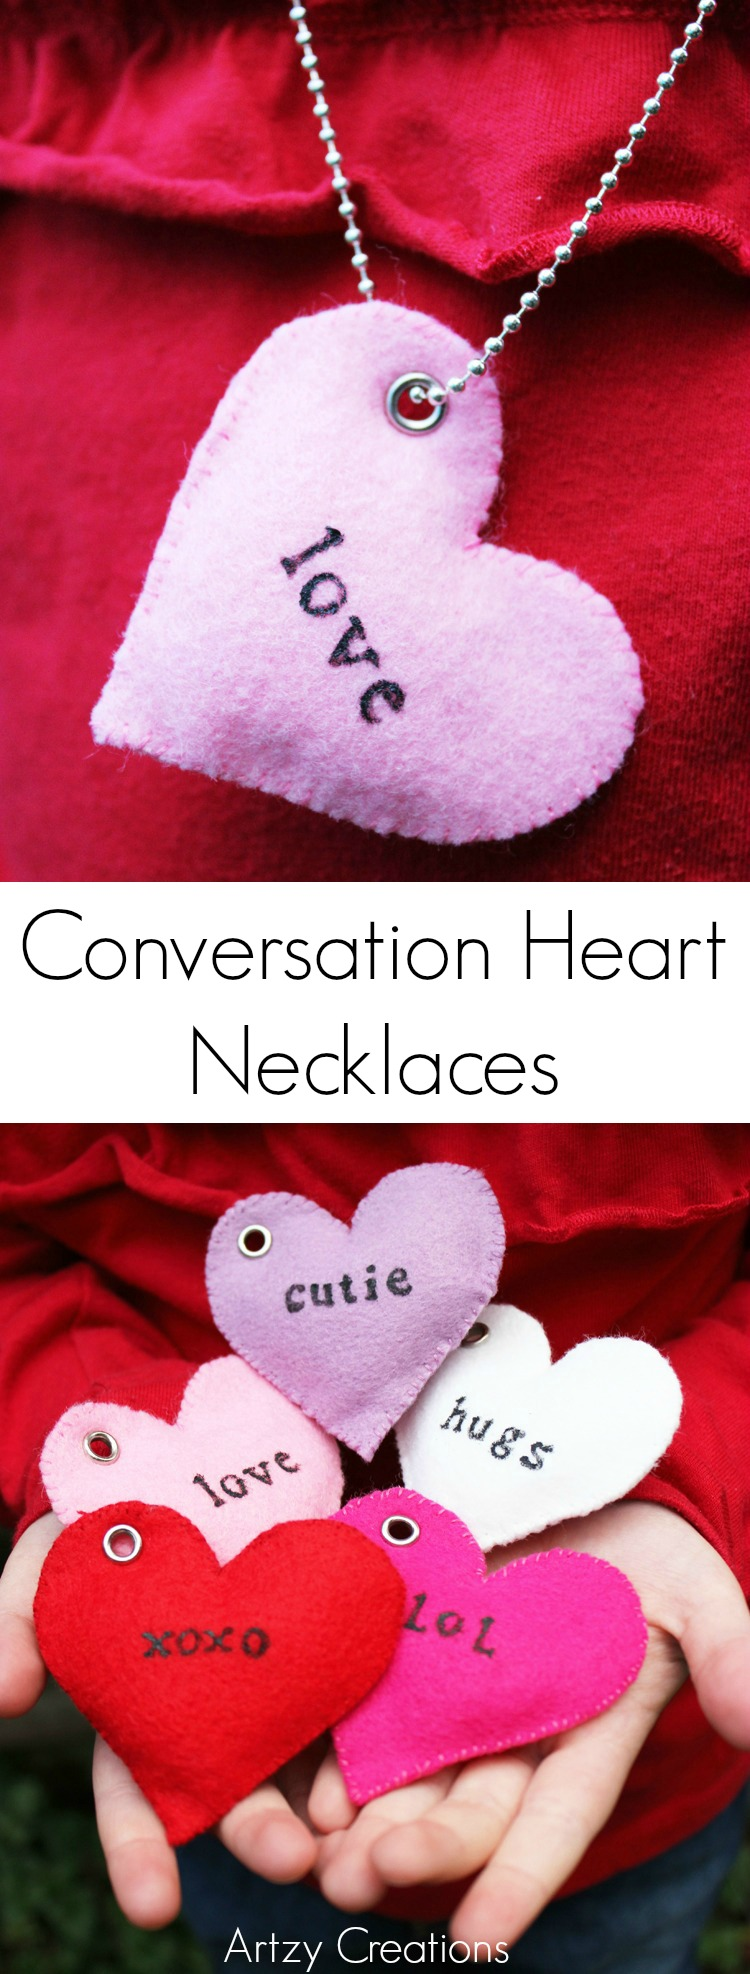 Conversation Heart Necklace-Artzy Creations 8